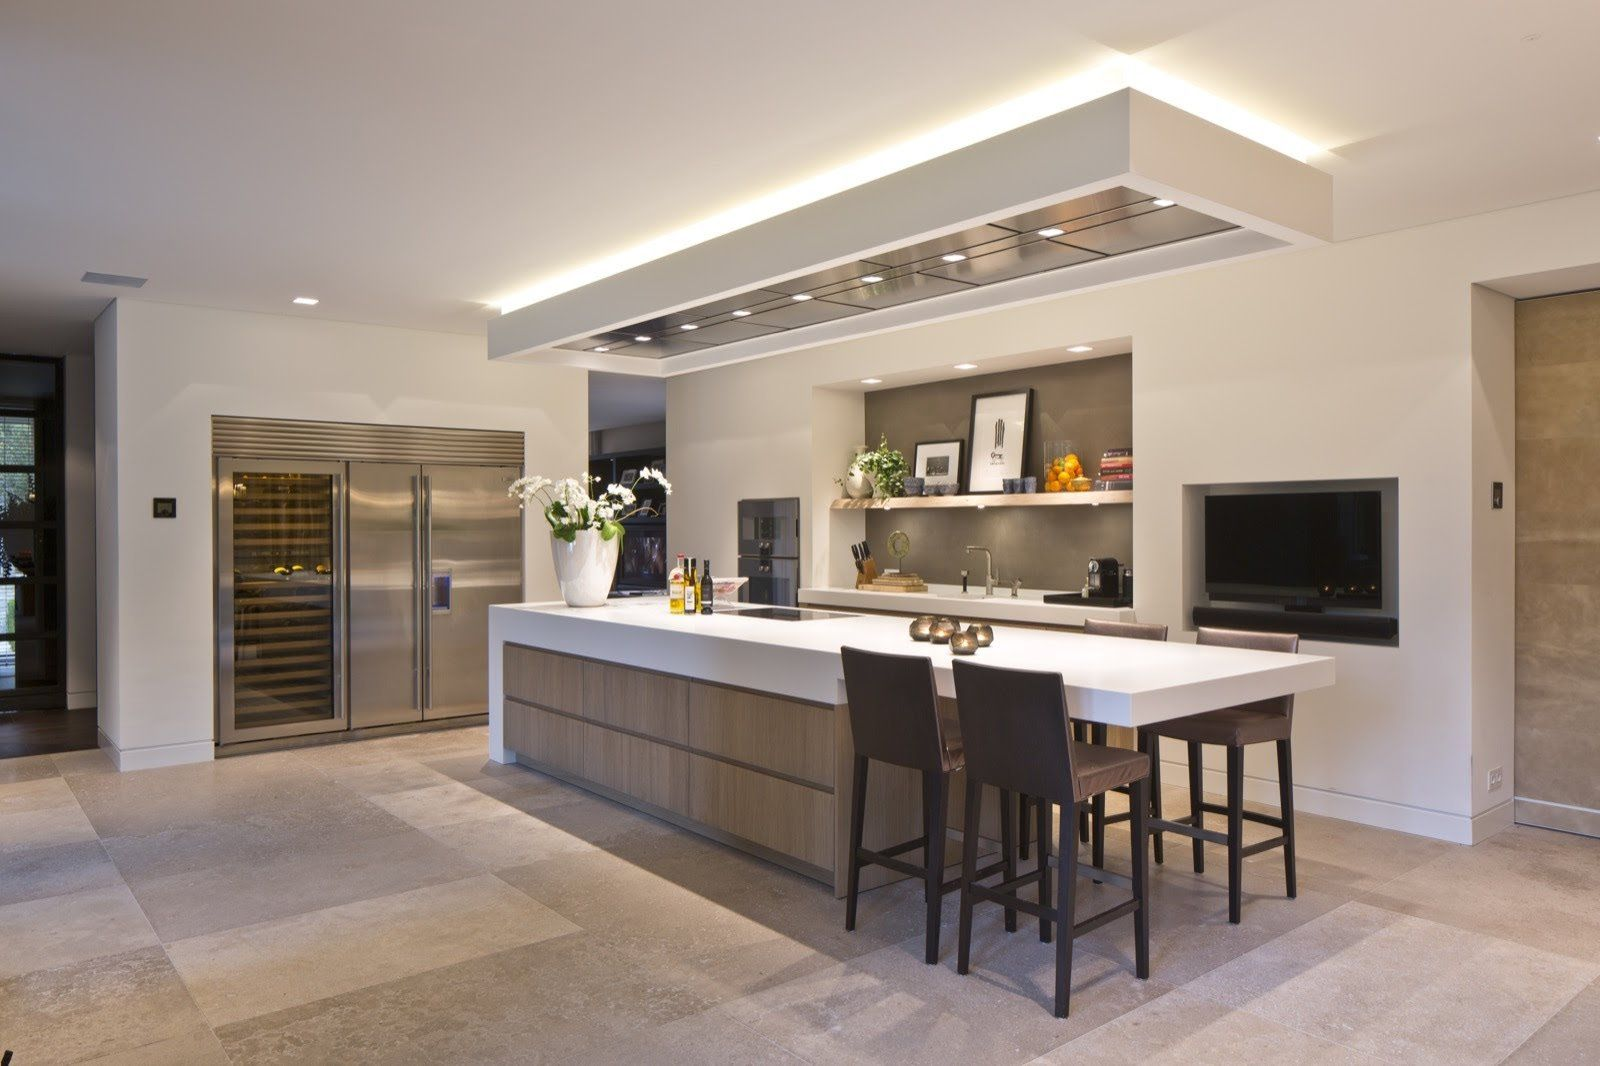 Van boven keukens keuken pinterest kitchens condo design and